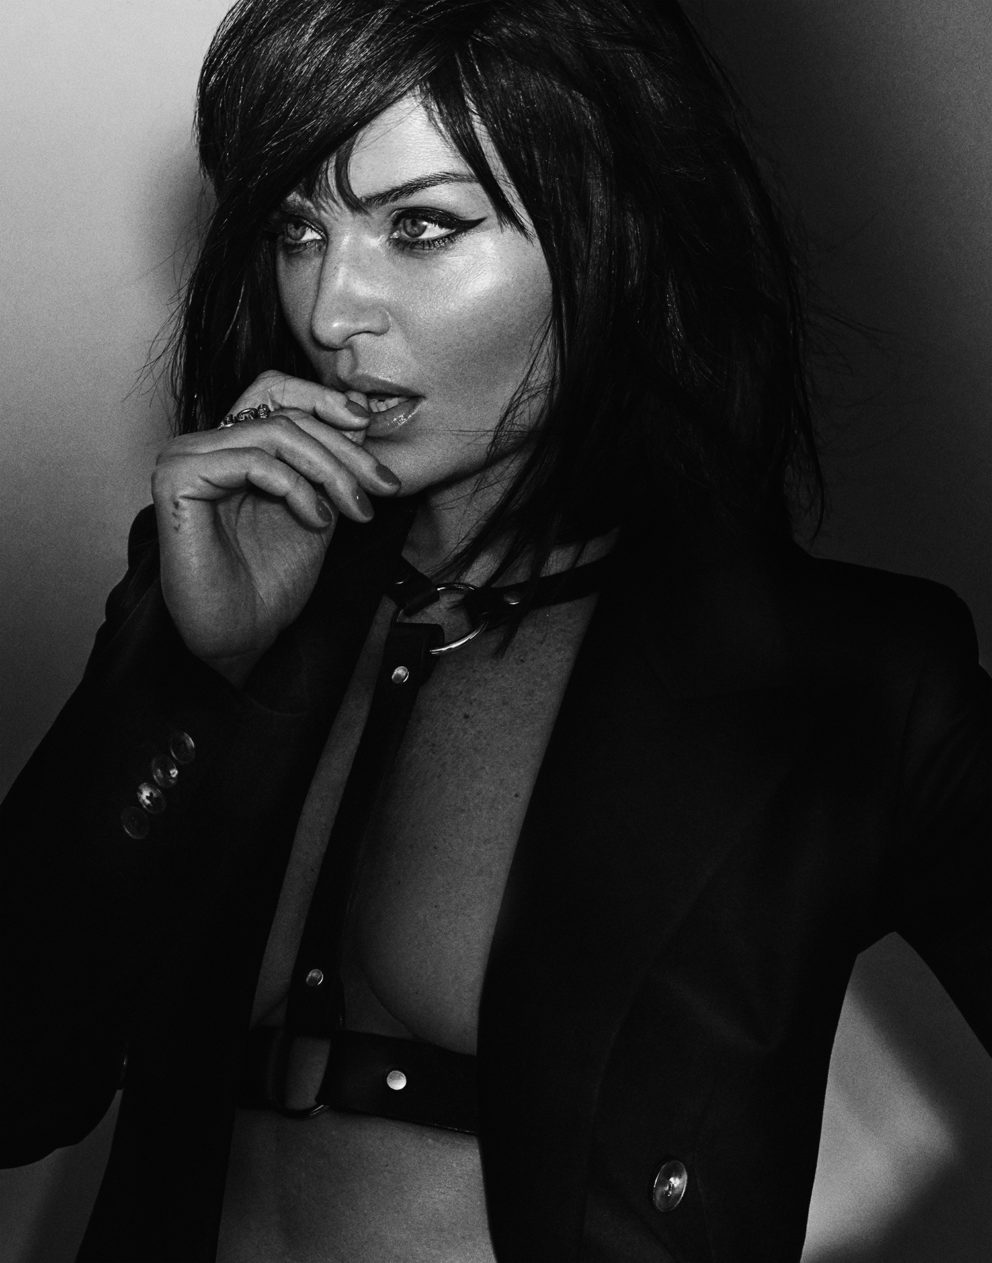 171128 Helena Christensen By Christian Hogstedt 14